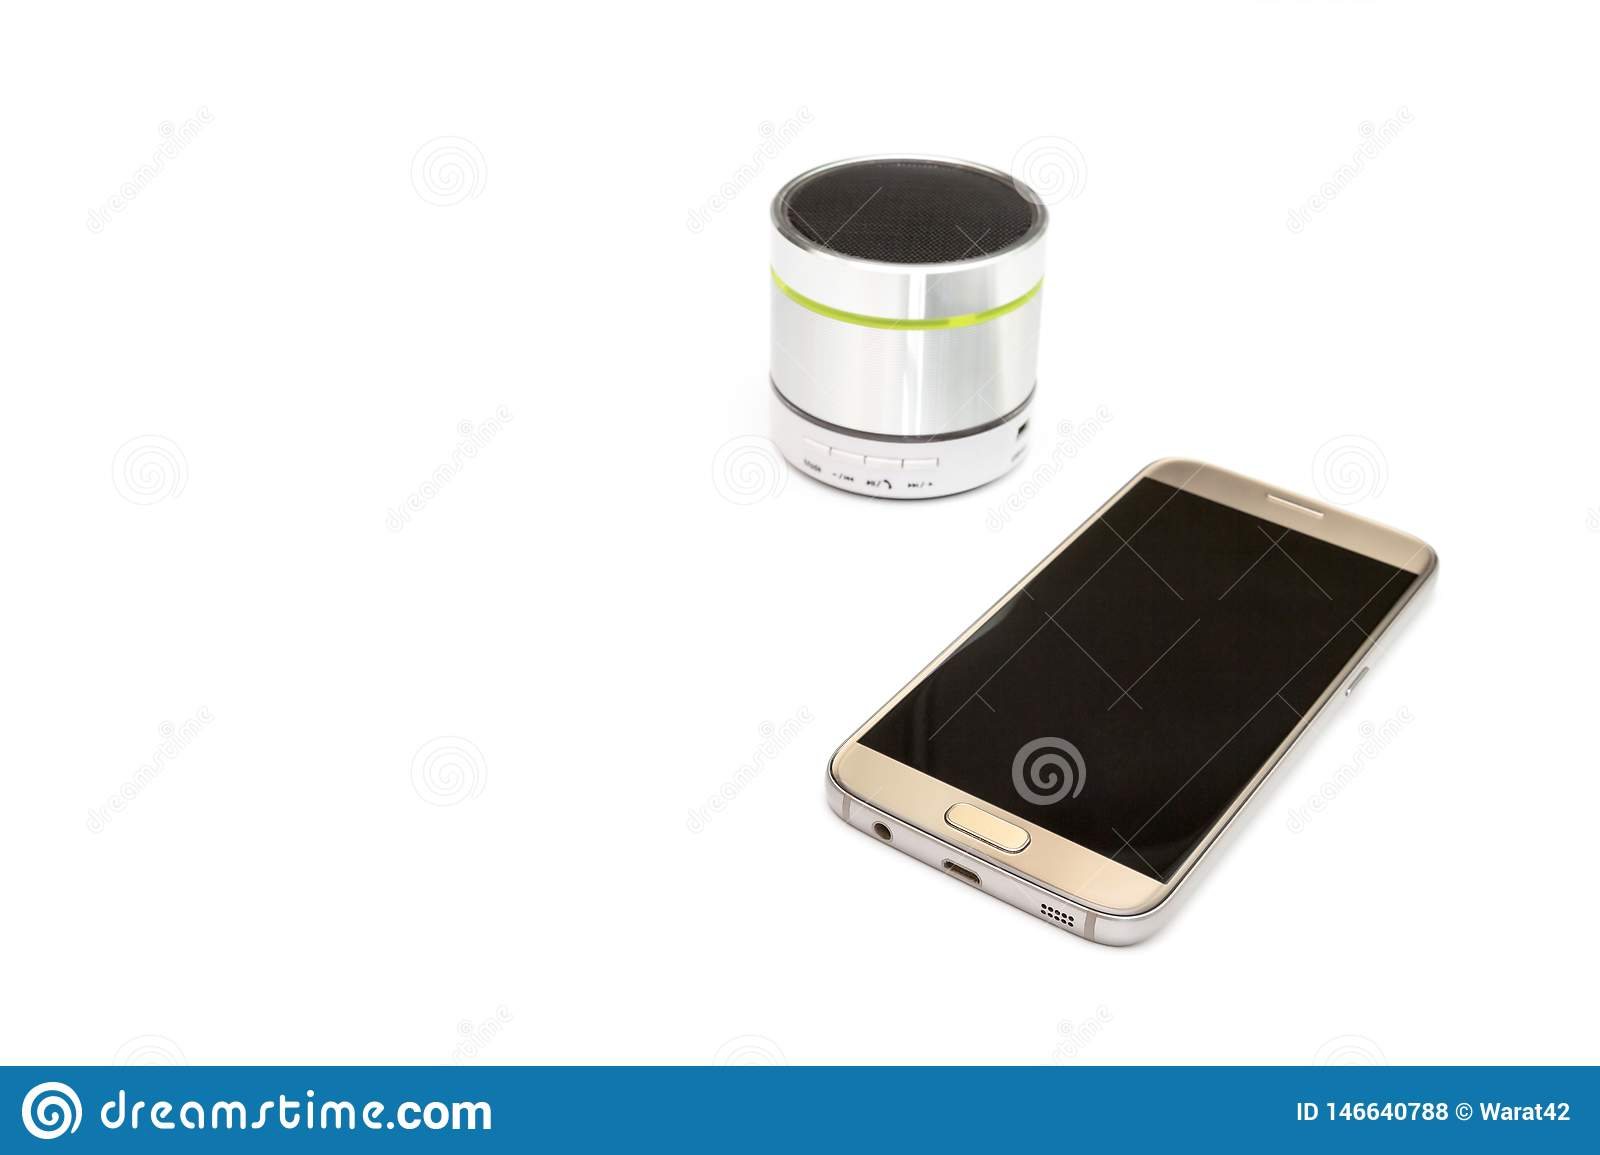 Cellphone and silver bluetooth speaker isolated on white background